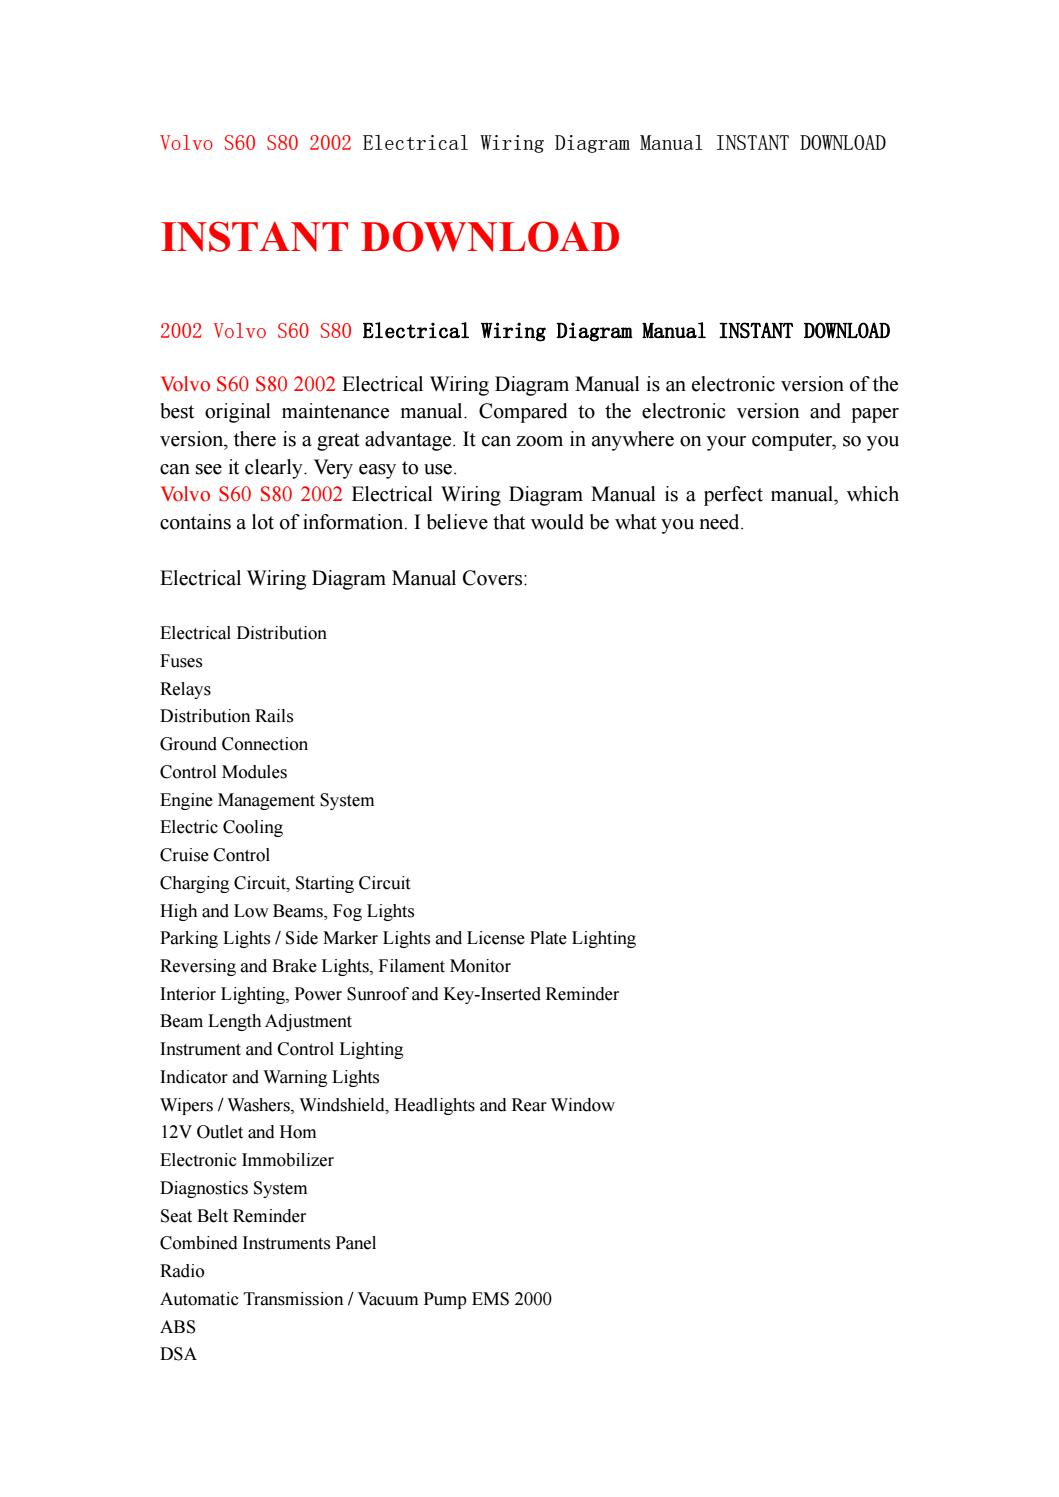 Volvo S60 S80 2002 Electrical Wiring Diagram Manual Instant Download Overall By Kjsjenfnsef Issuu